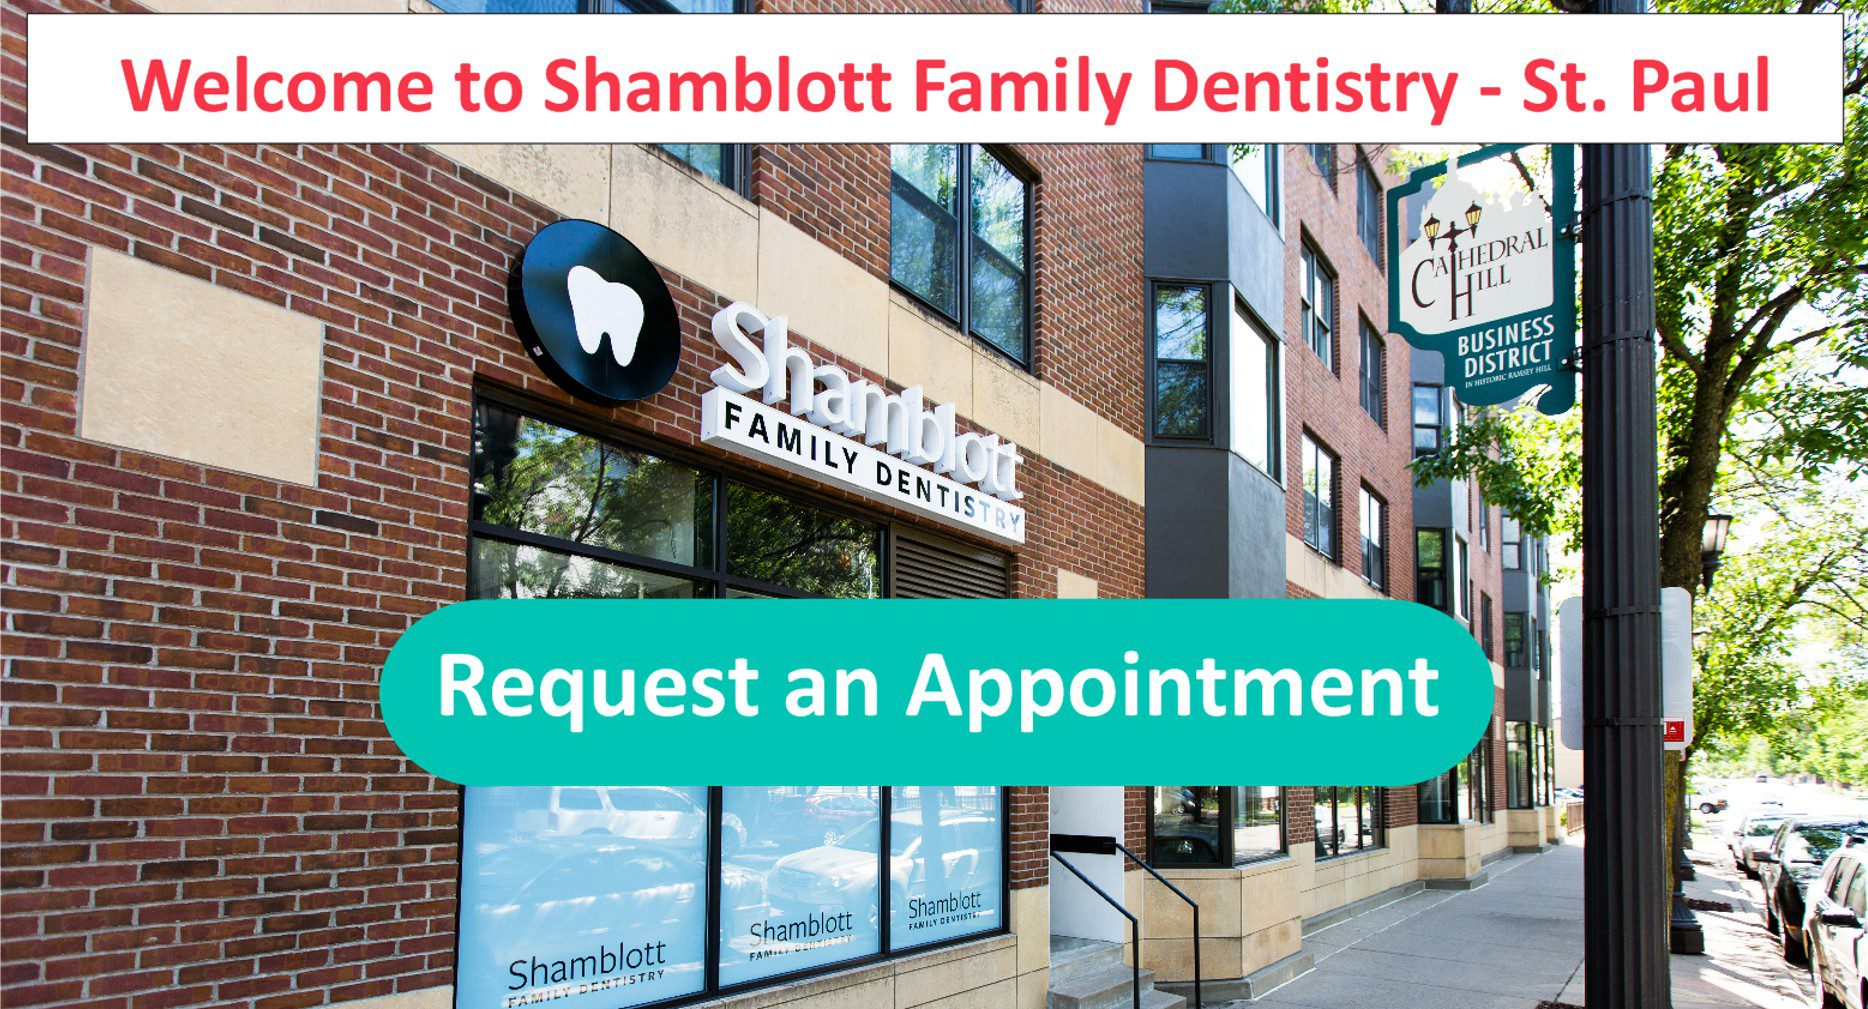 Shamblott Family Dentistry - St. Paul